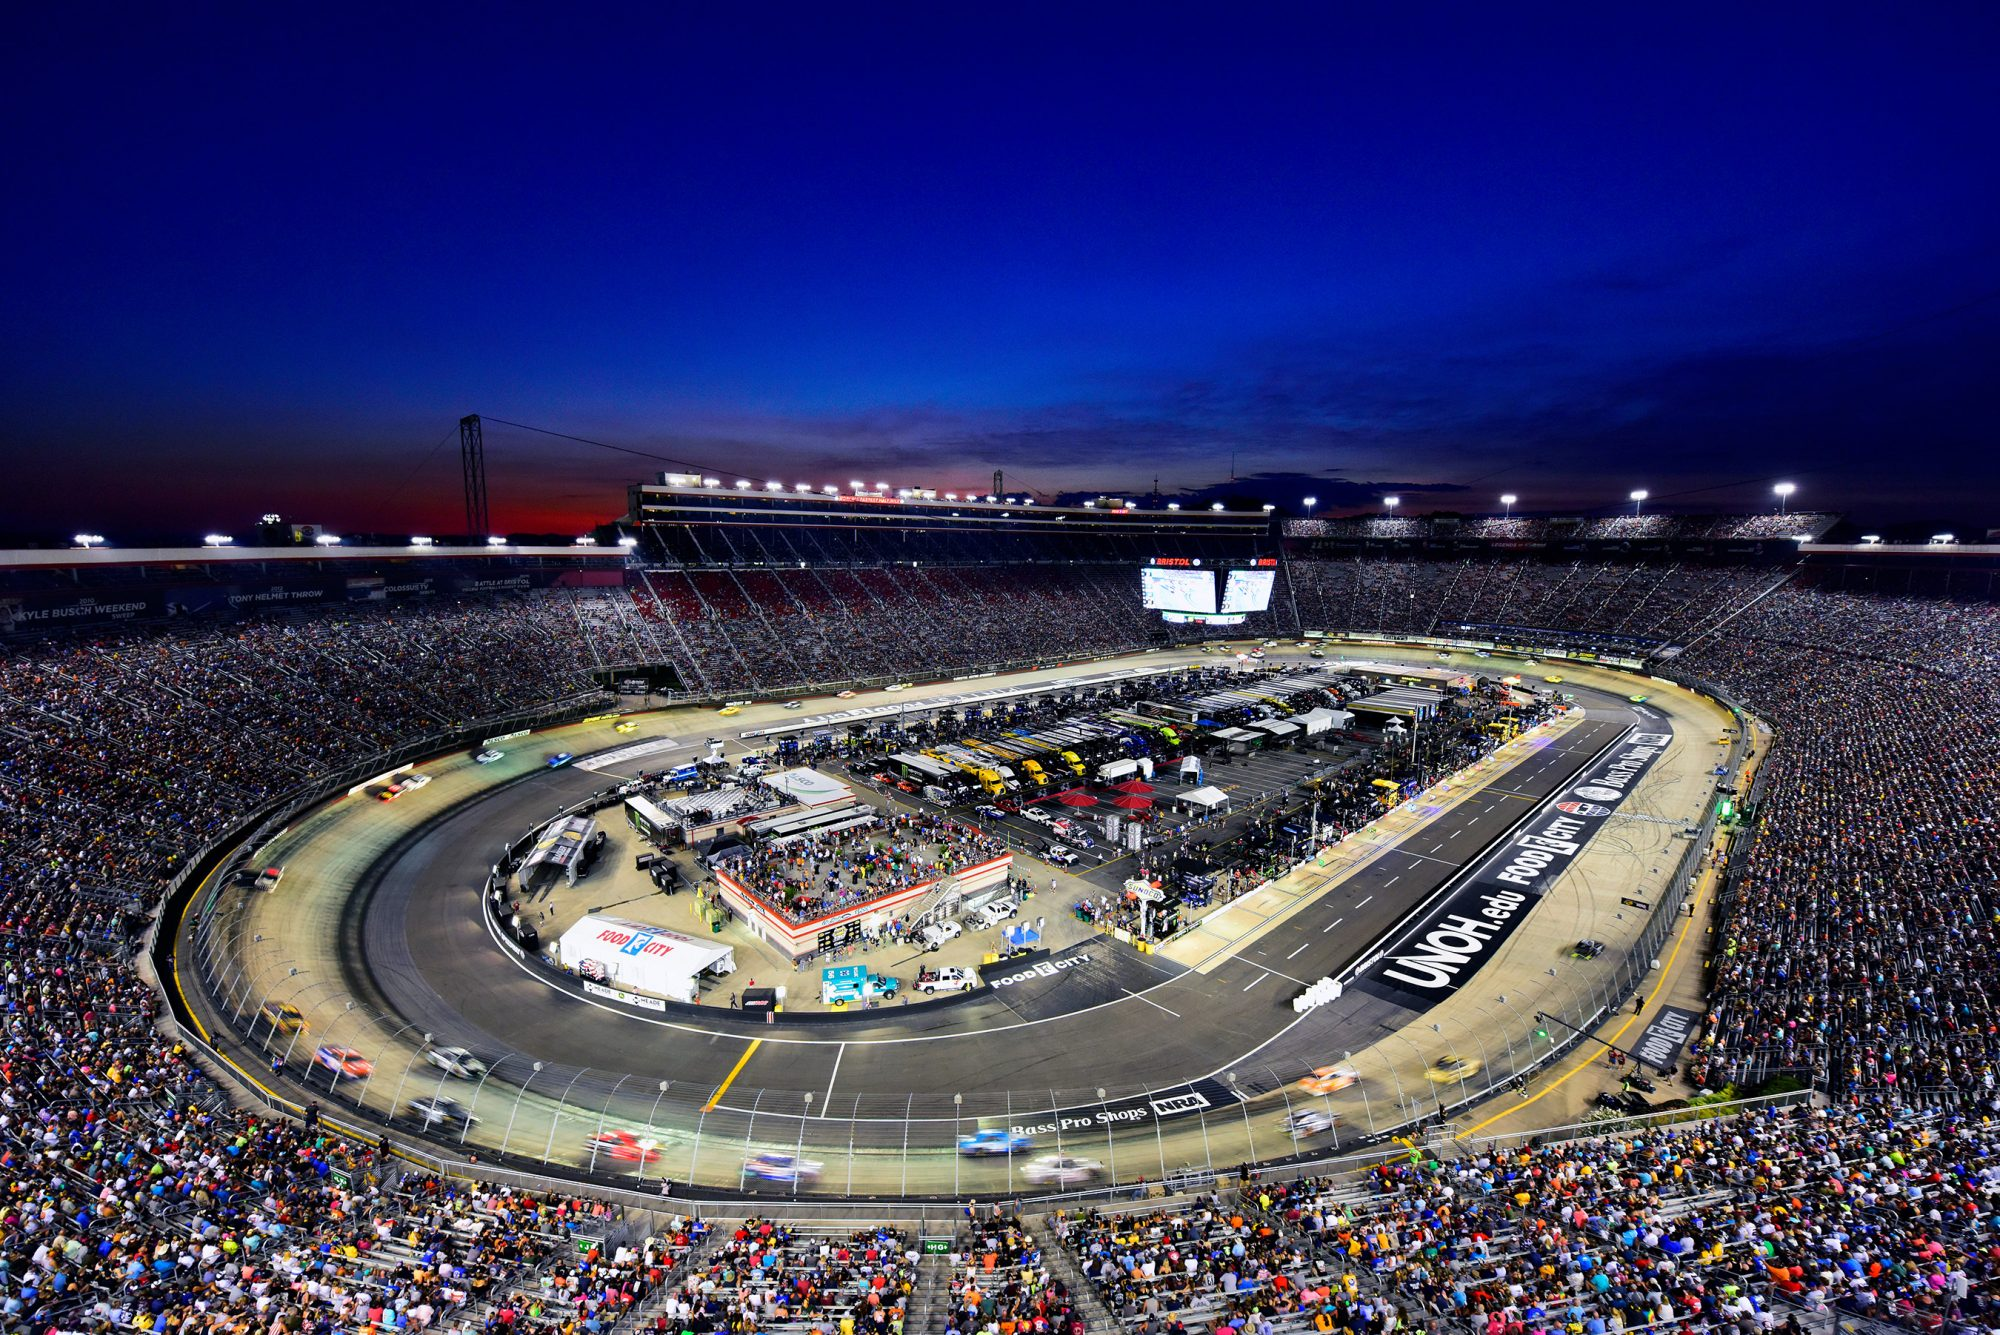 BRISTOL, TENNESSEE - AUGUST 17: A general view of the action during the Monster Energy NASCAR Cup Series Bass Pro Shops NRA Night Race at Bristol Motor Speedway on August 17, 2019